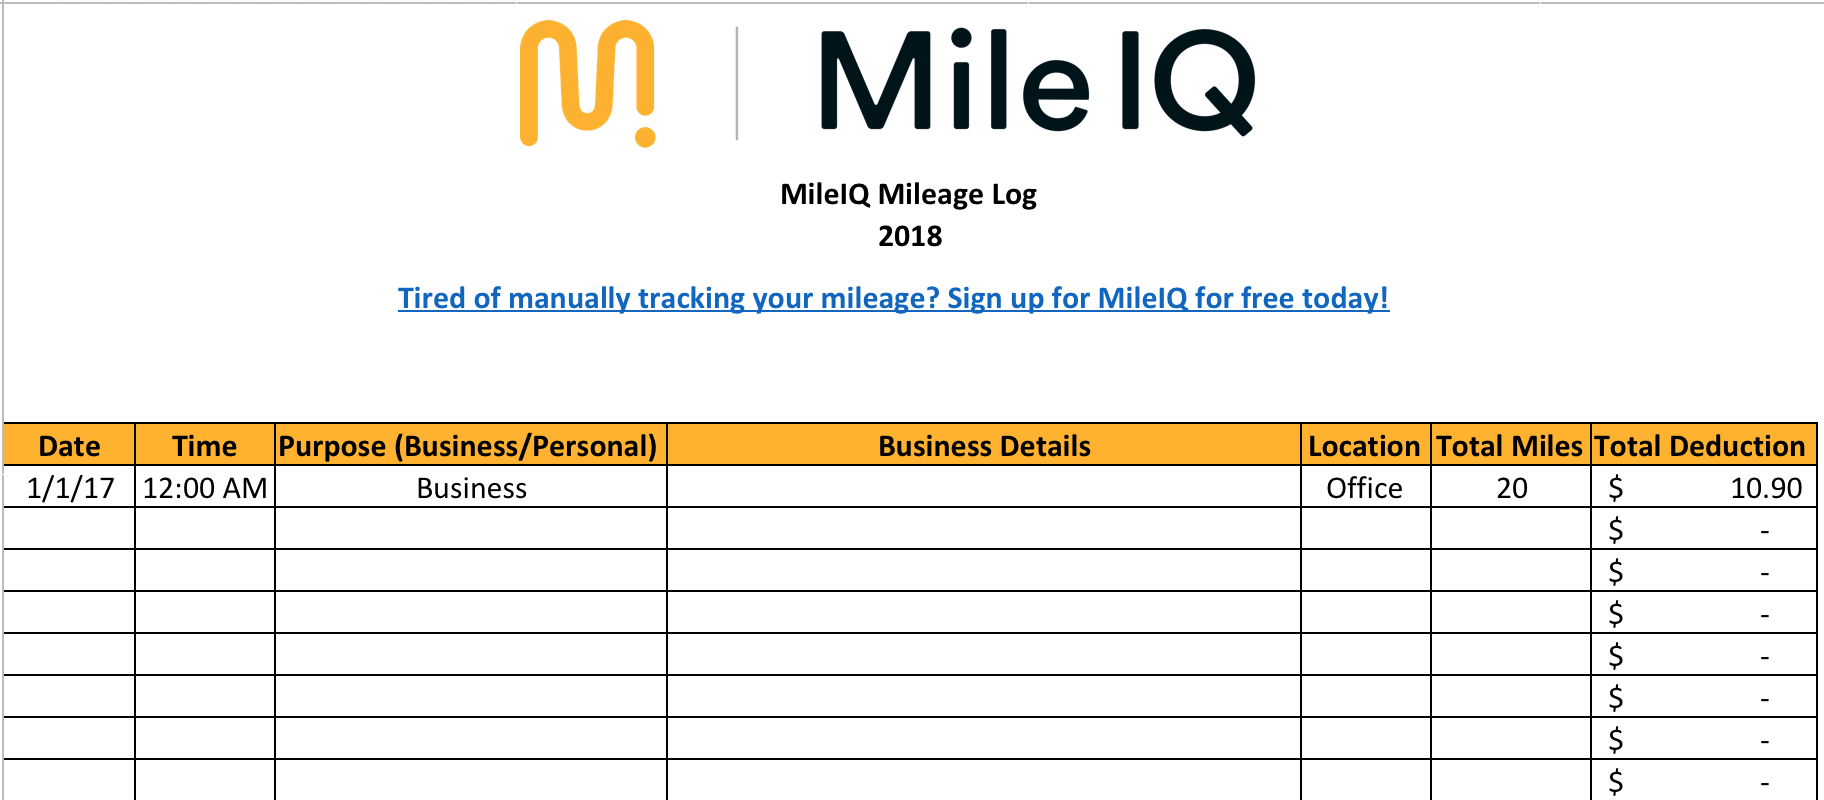 Employee Error Tracking Spreadsheet Intended For Free Mileage Log Template For Excel  Track Your Miles